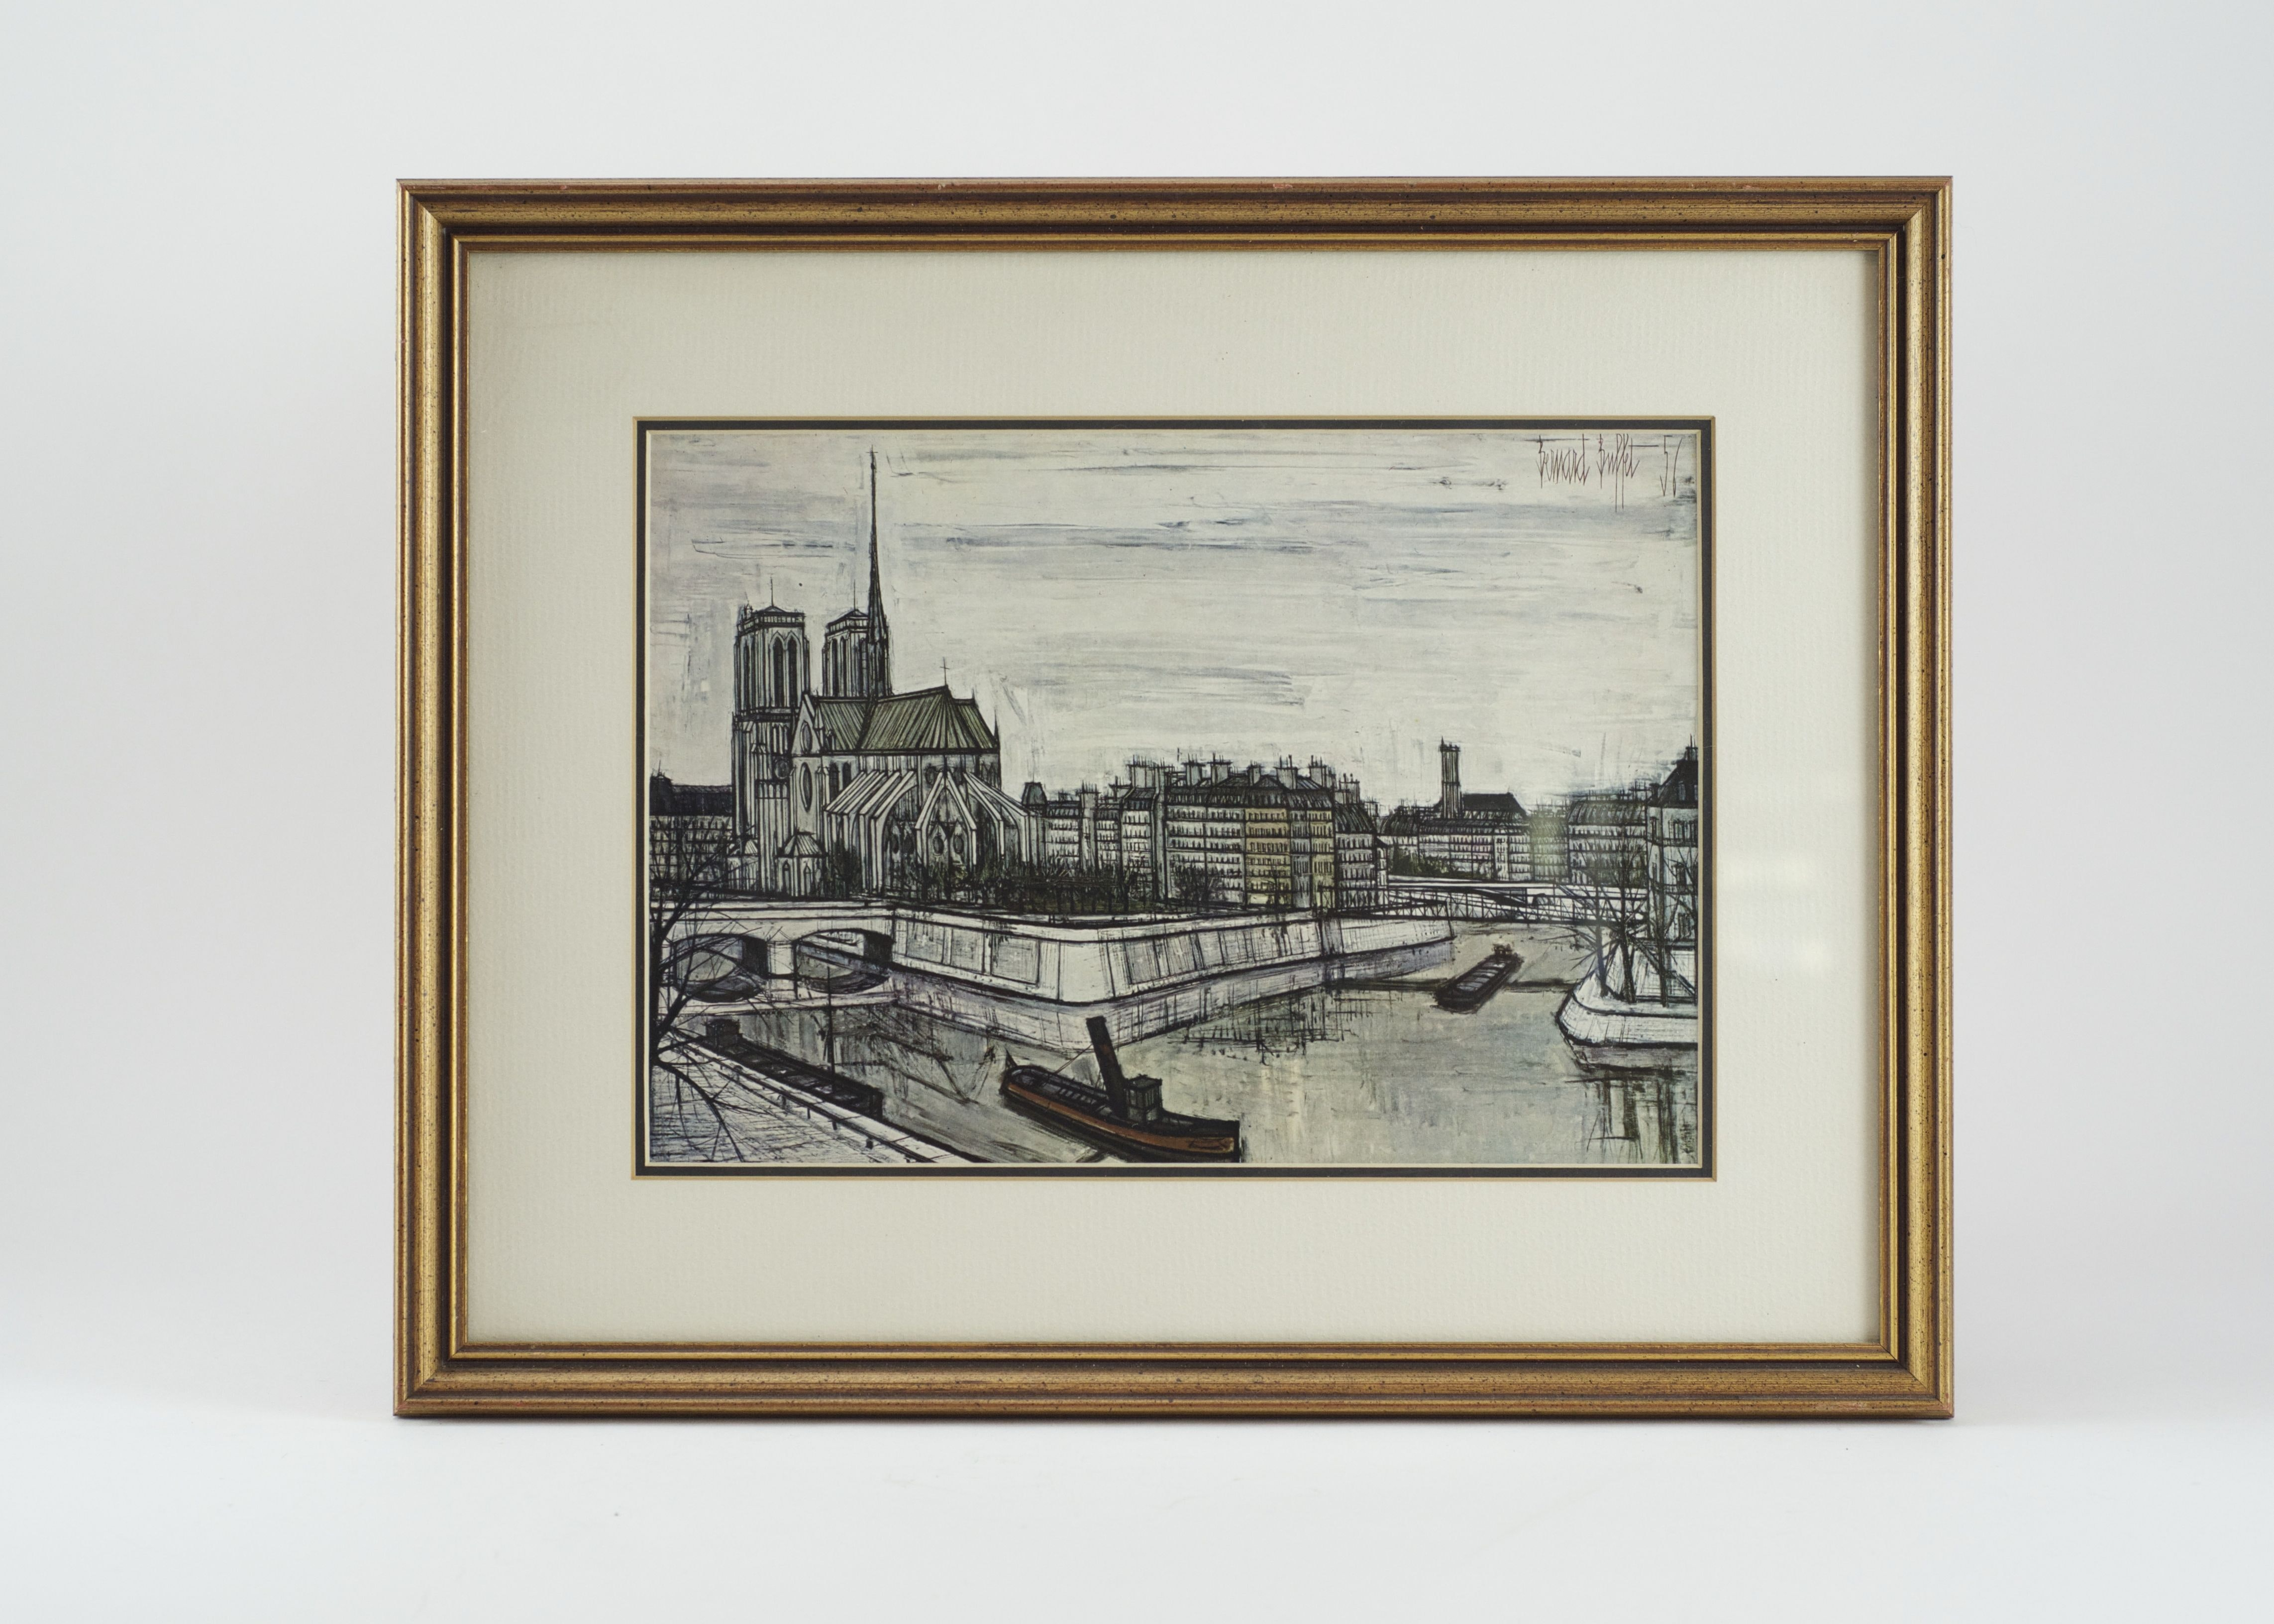 bernard buffet offset lithograph print of notre dame cathedral ebth rh ebth com bernard buffet 55 prints bernard buffet prints for sale